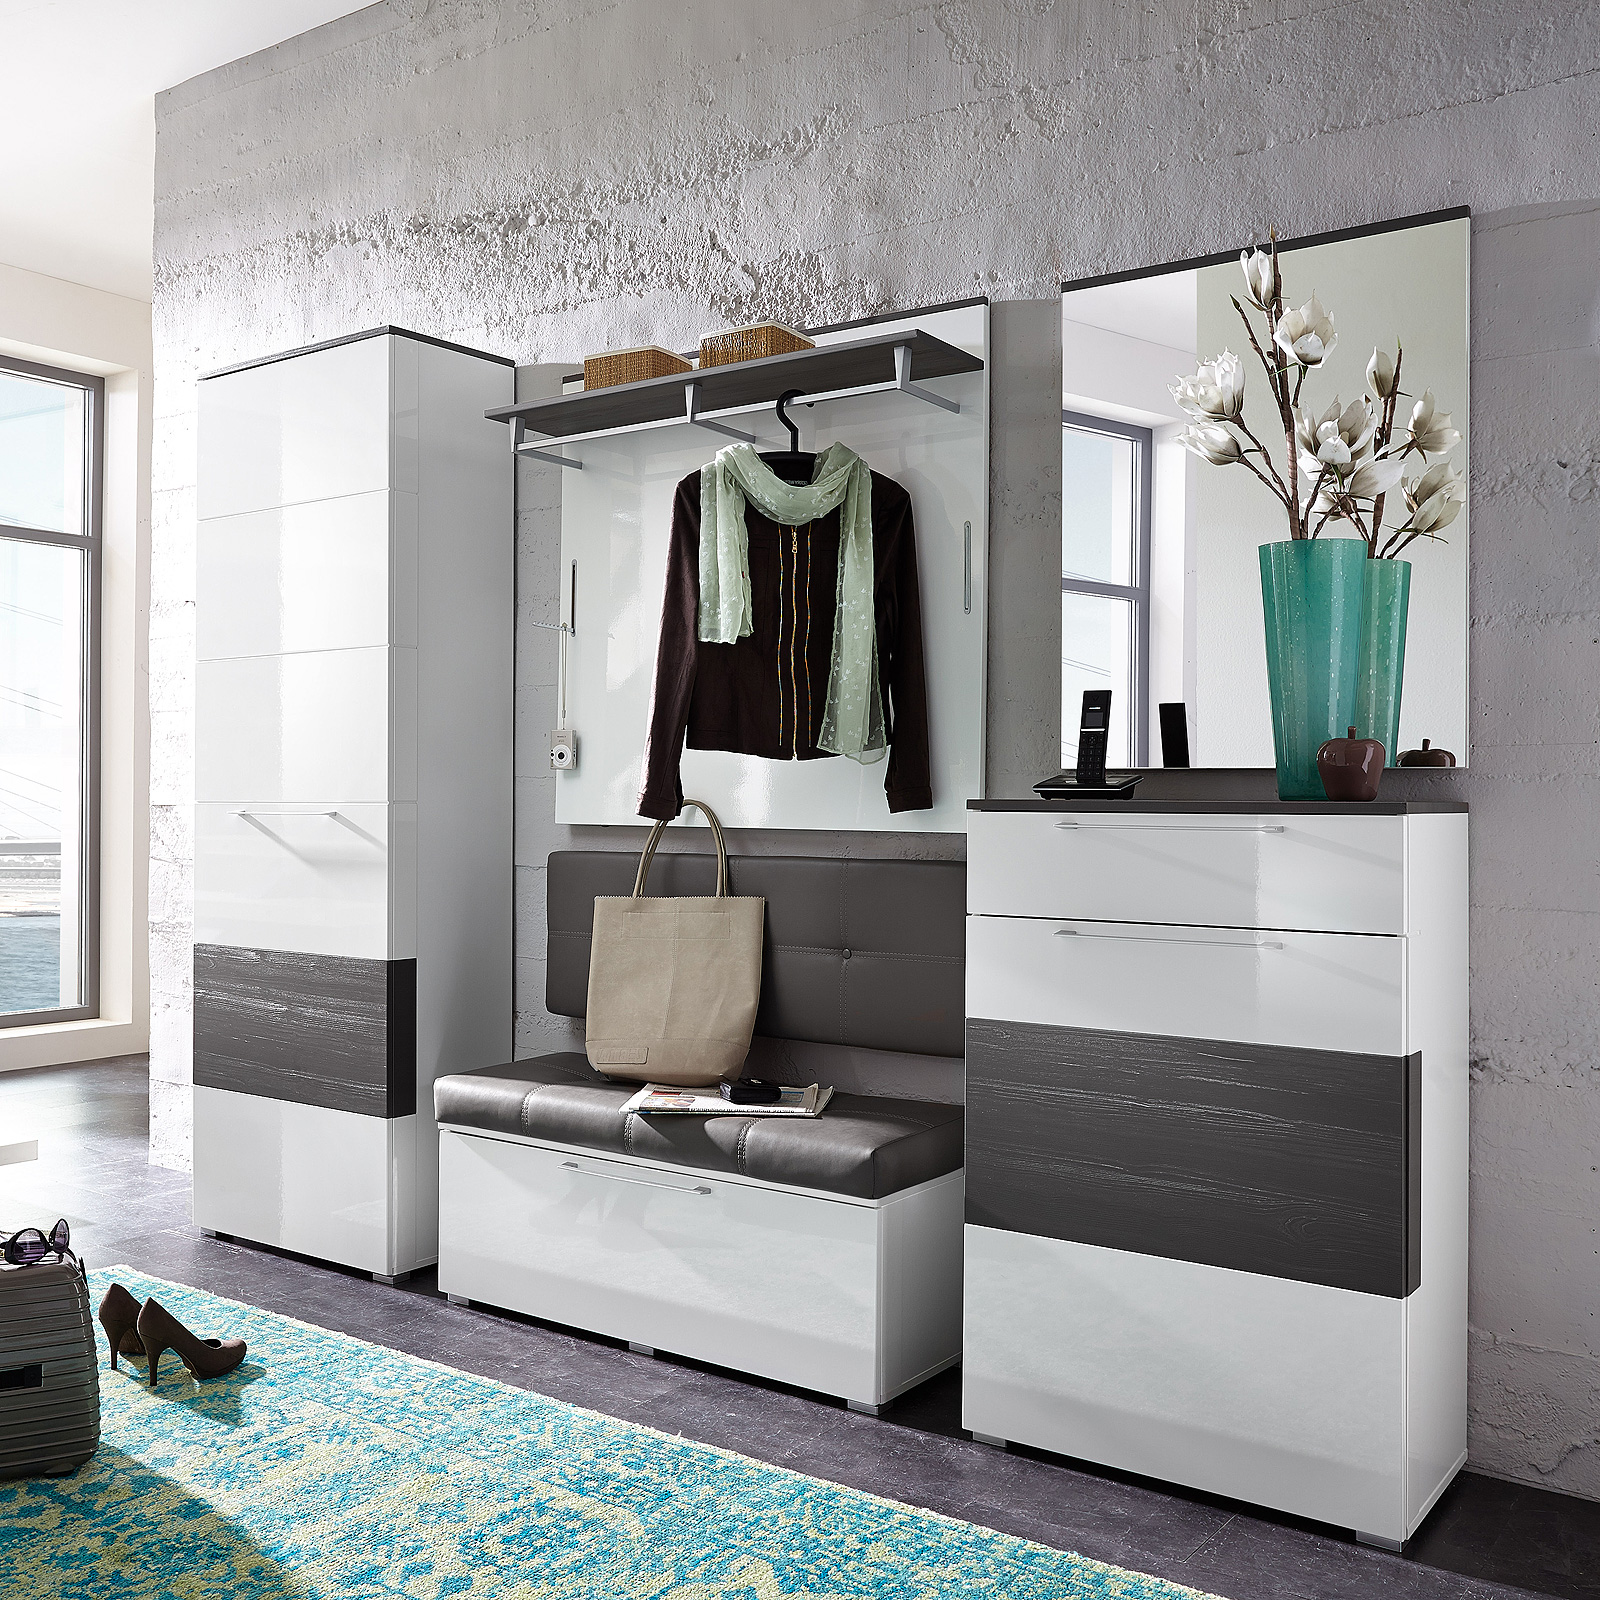 garderobenset reno garderobe schrank bank spiegel in wei hochglanz und grau ebay. Black Bedroom Furniture Sets. Home Design Ideas